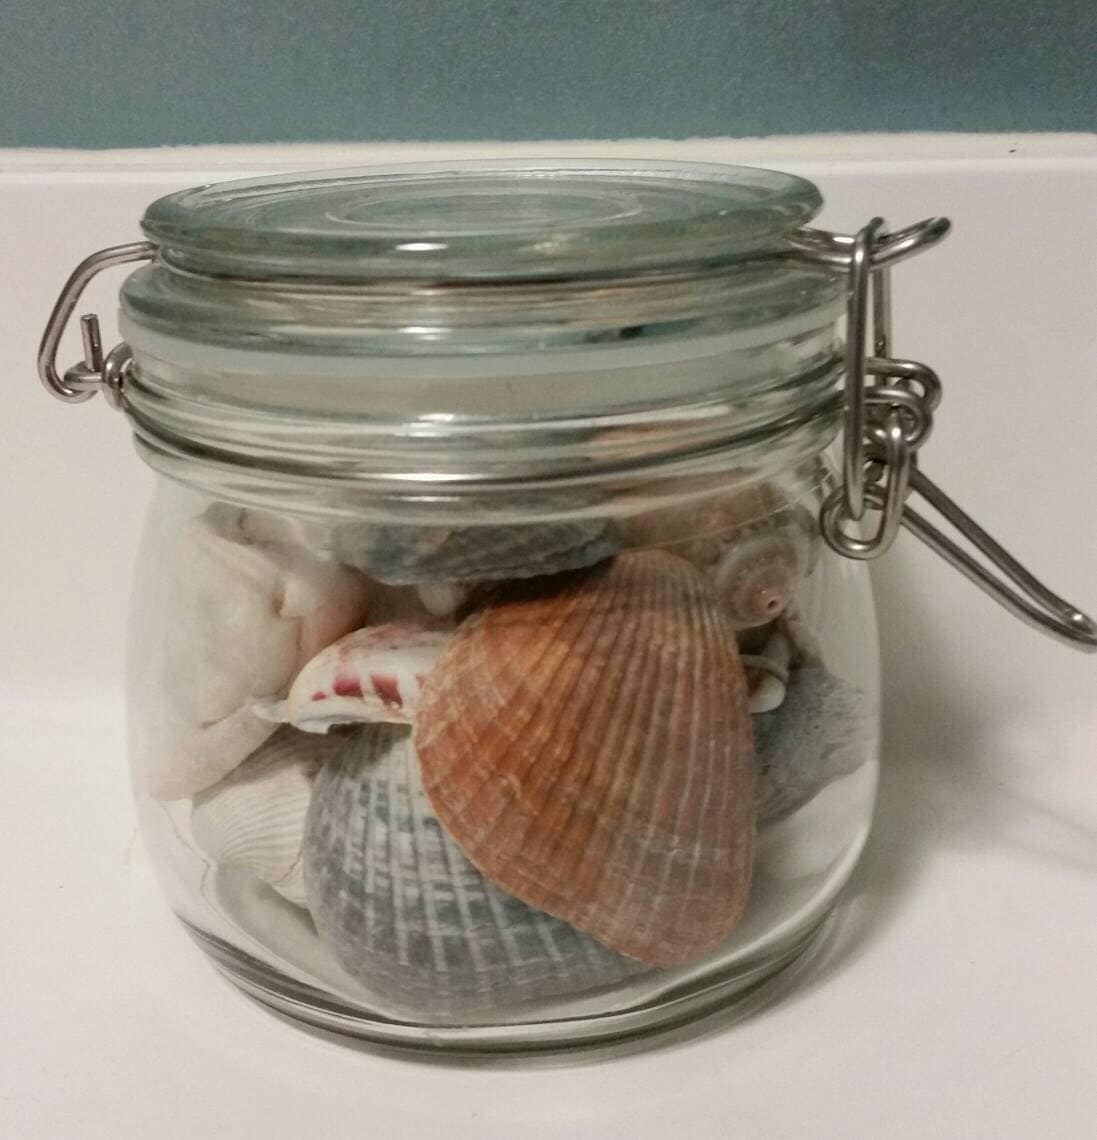 Description. This Is A Clear Glass Metal Clasp Storage Jar ...